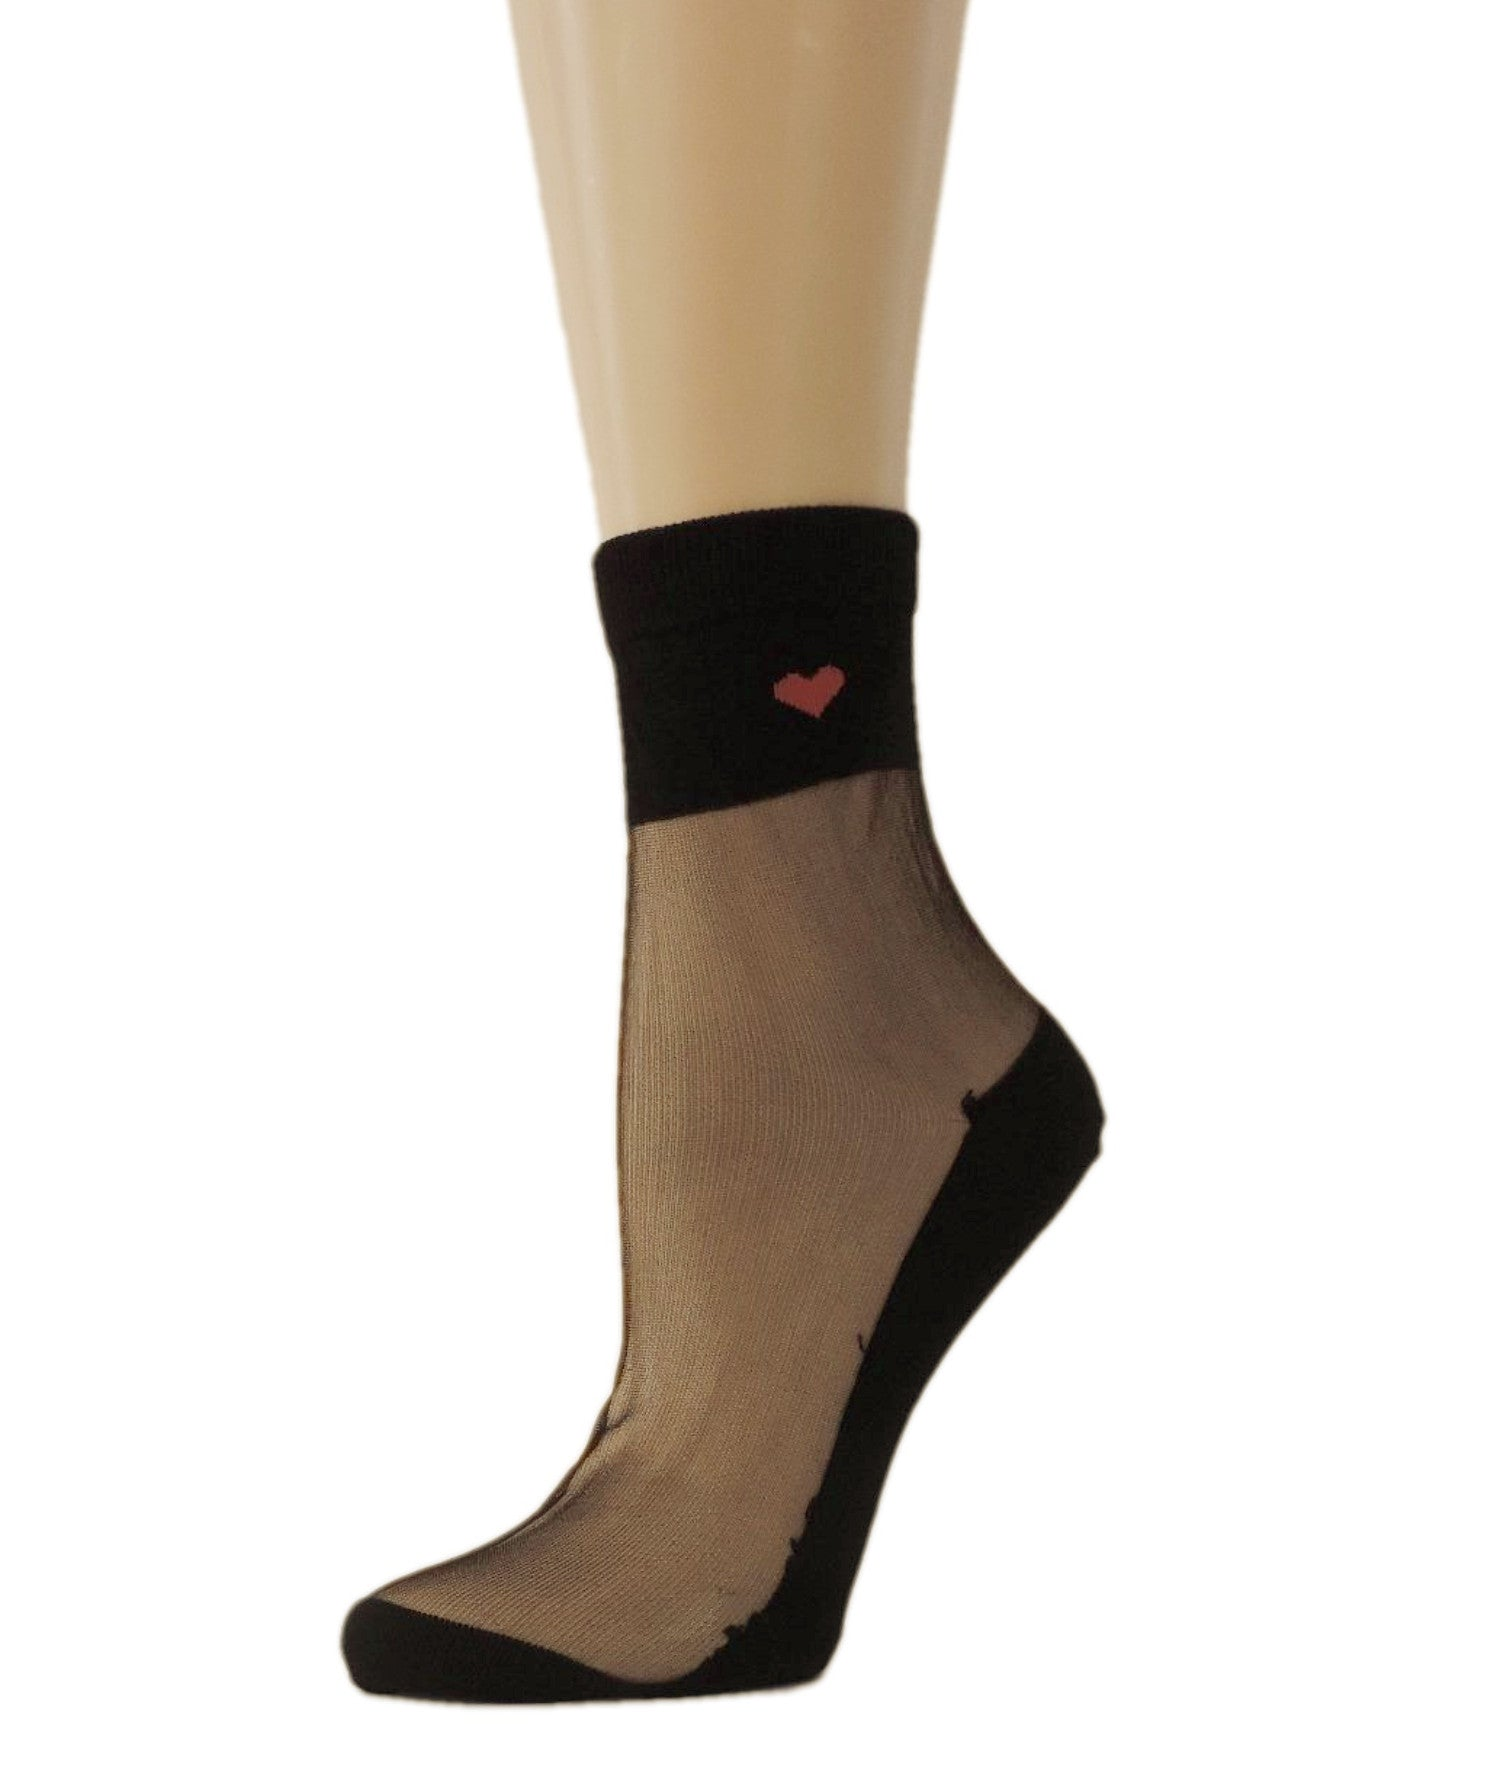 Young Heart Black Sheer Socks - Global Trendz Fashion®